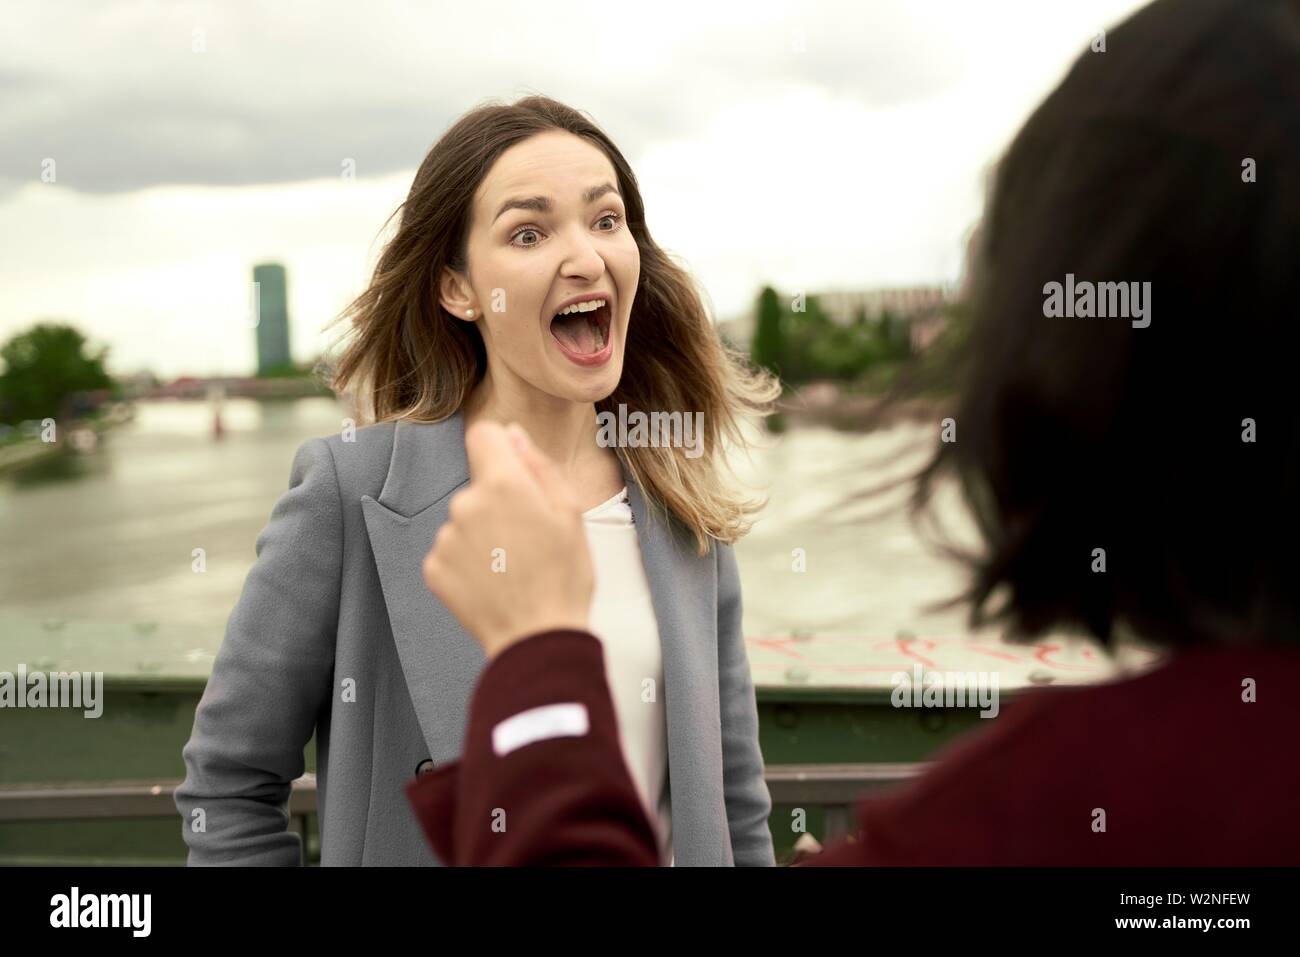 excited woman talking to opponent on bridge over river Main, in Frankfurt am Main, Germany - Stock Image